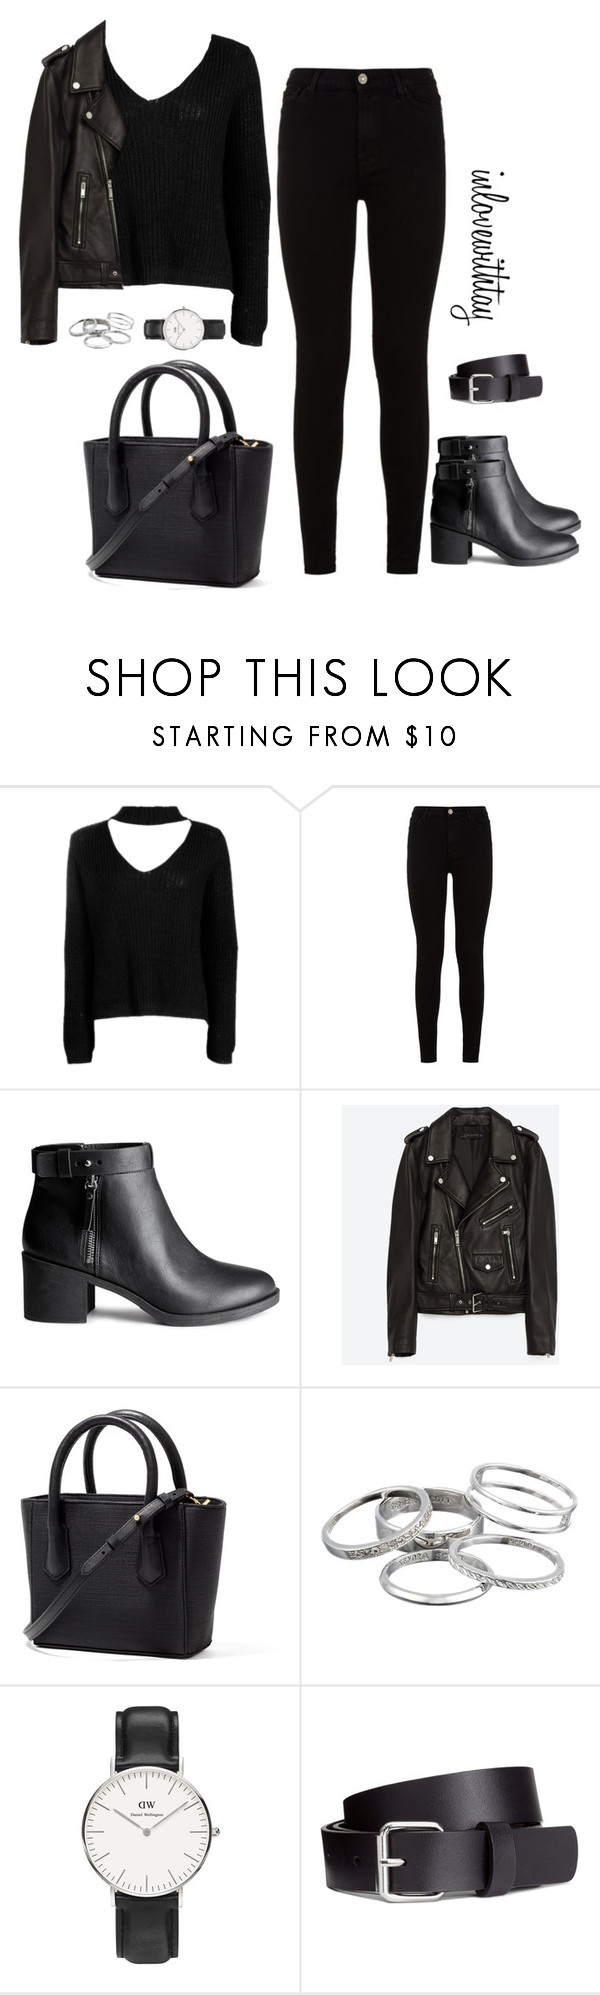 2❤ by inlovewithtay on Polyvore featuring mode, Boohoo, Jakke, 7 For All Mankind, H&M, Daniel Wellington and Kendra Scott